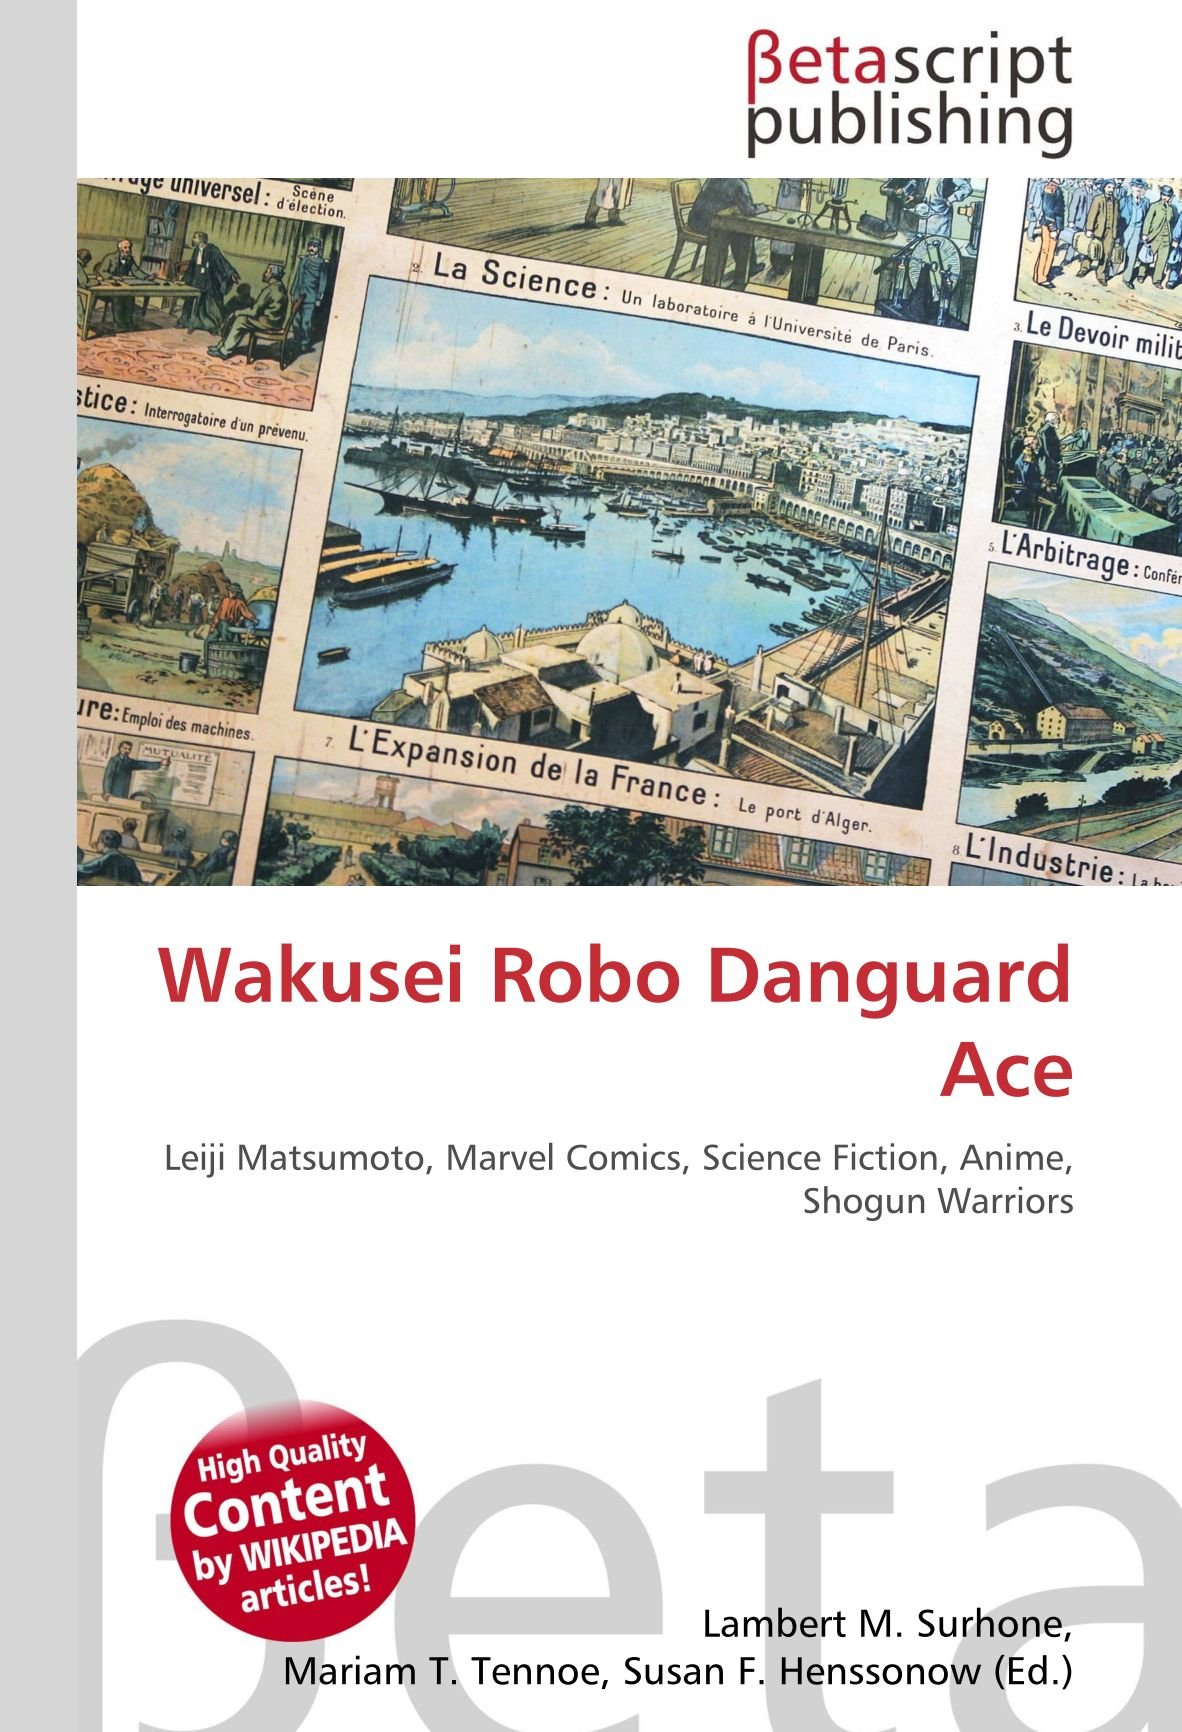 Wakusei Robo Danguard Ace: Leiji Matsumoto, Marvel Comics, Science Fiction, Anime, Shogun Warriors: Amazon.es: Surhone, Lambert M, Timpledon, Miriam T, Marseken, Susan F: Libros en idiomas extranjeros